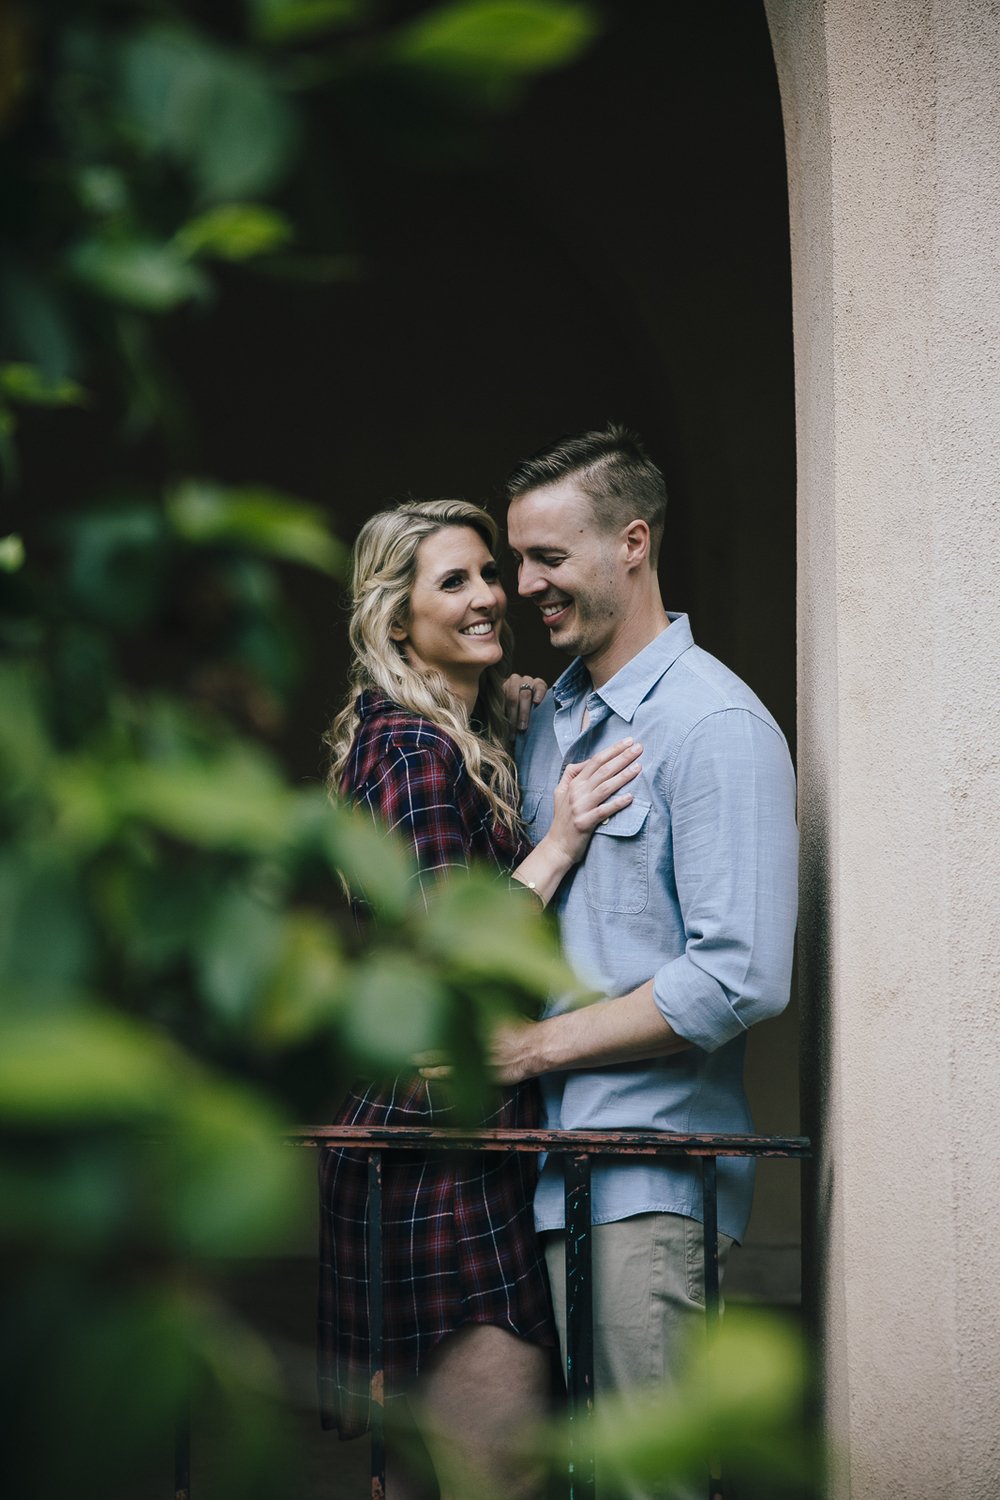 NANCY_&_AARON_ENGAGEMENT_BALBOA_PARKS_LEAF_PHOTOGRAPHY_2016_5564.JPG